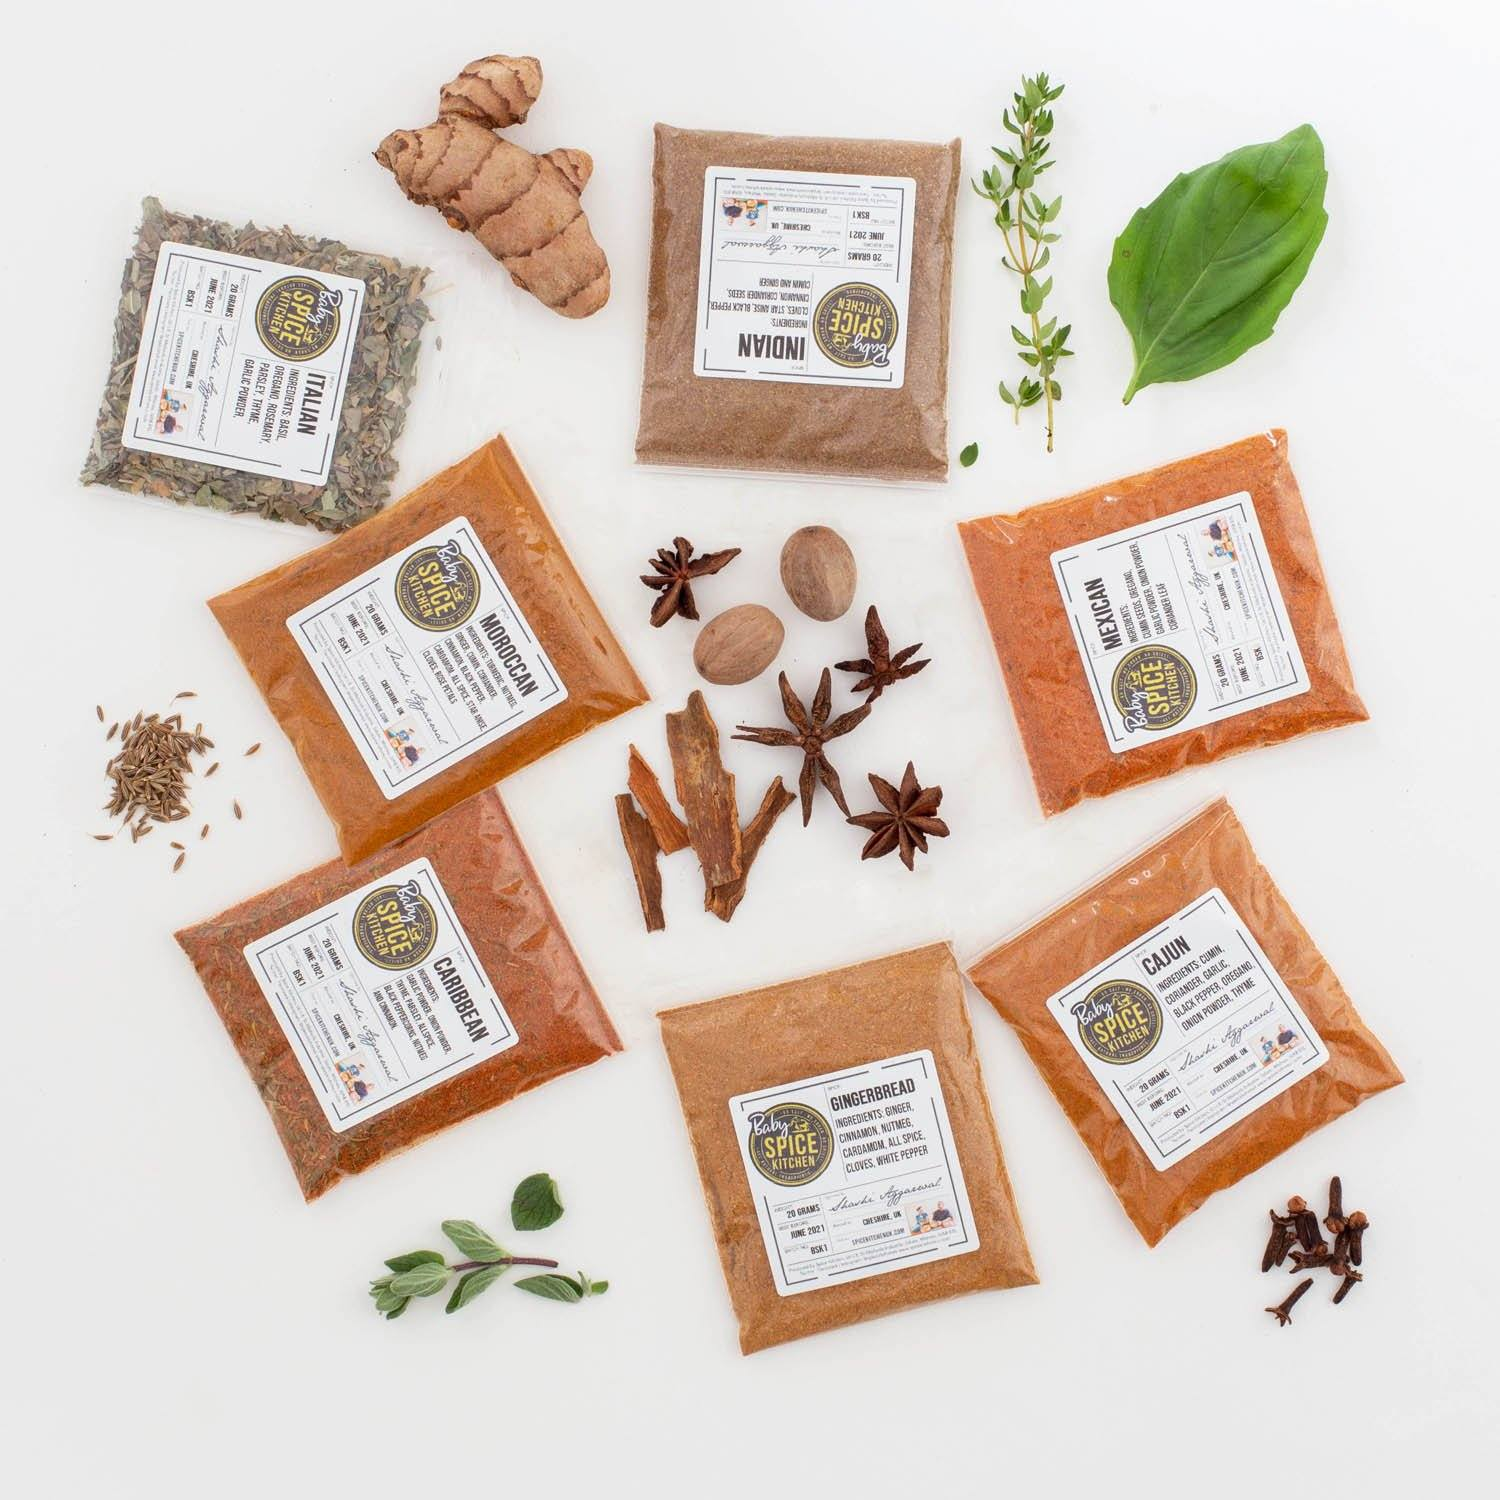 Baby Spice Kitchen Singles - Introduce Your Kids to Spice With Our Brand New Spice Collection - Spice Kitchen - Spices, Spice Blends, Gifts & Cookware